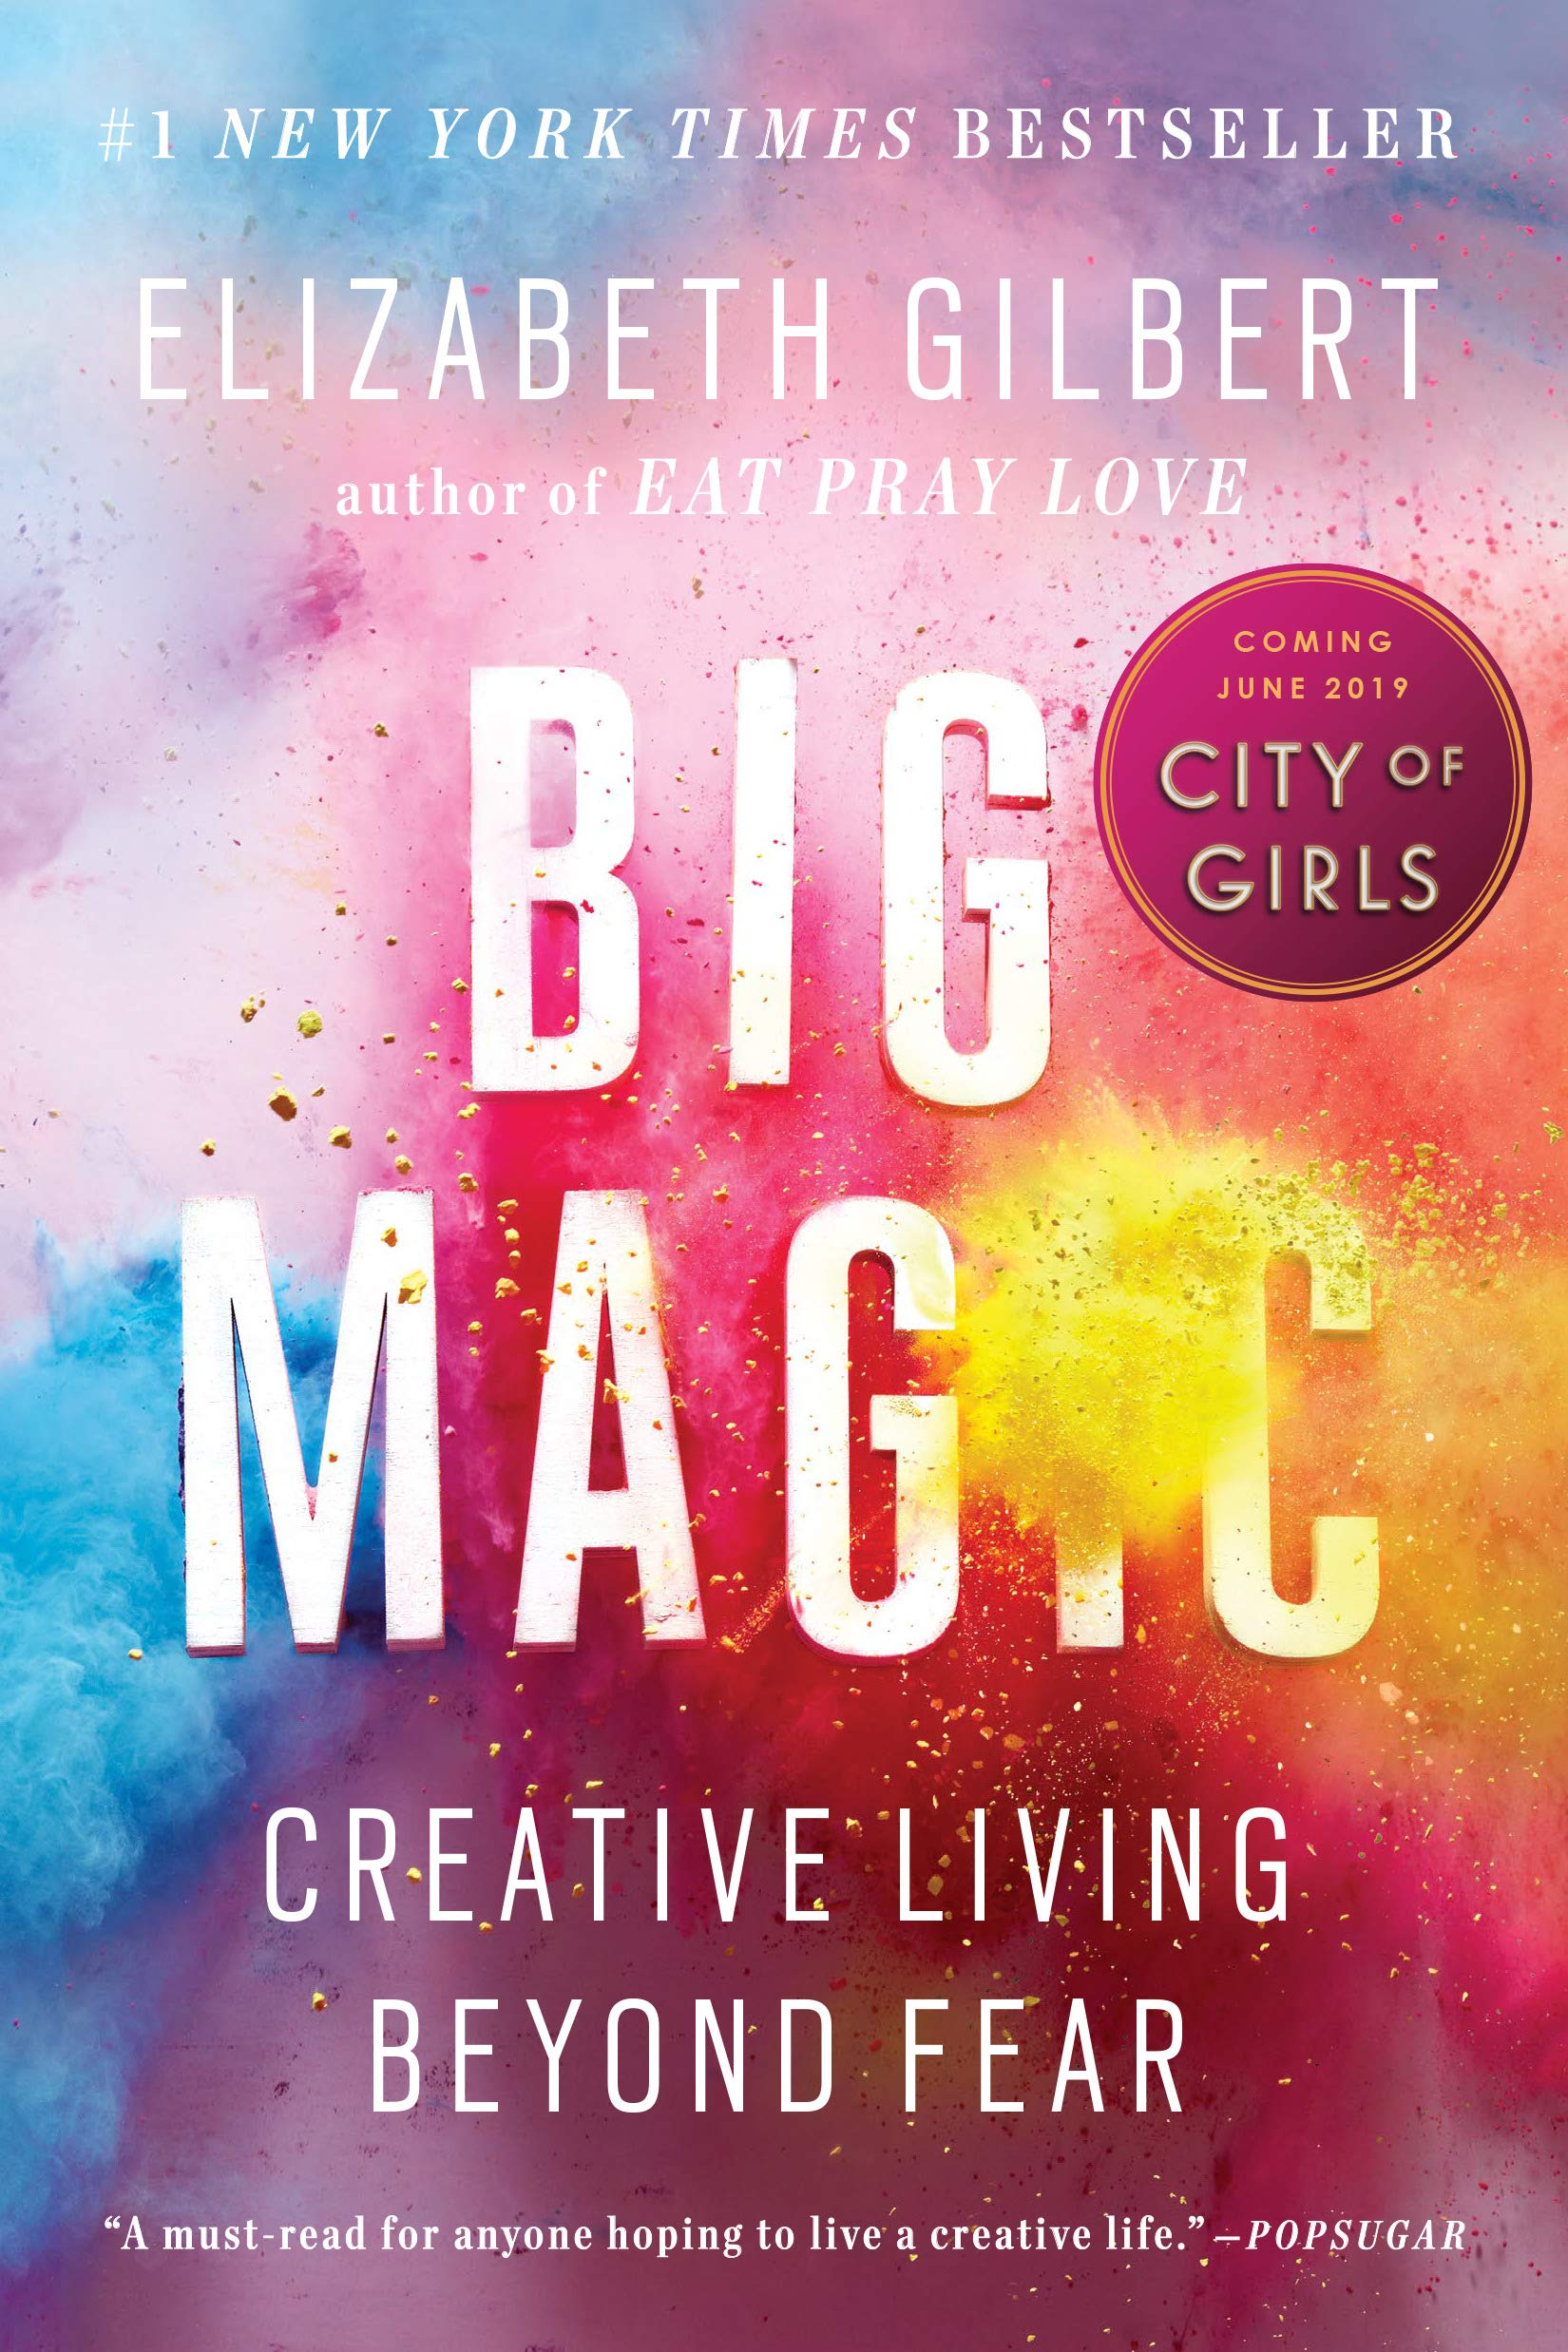 Big Magic Creative Living Beyond Fear.jpg